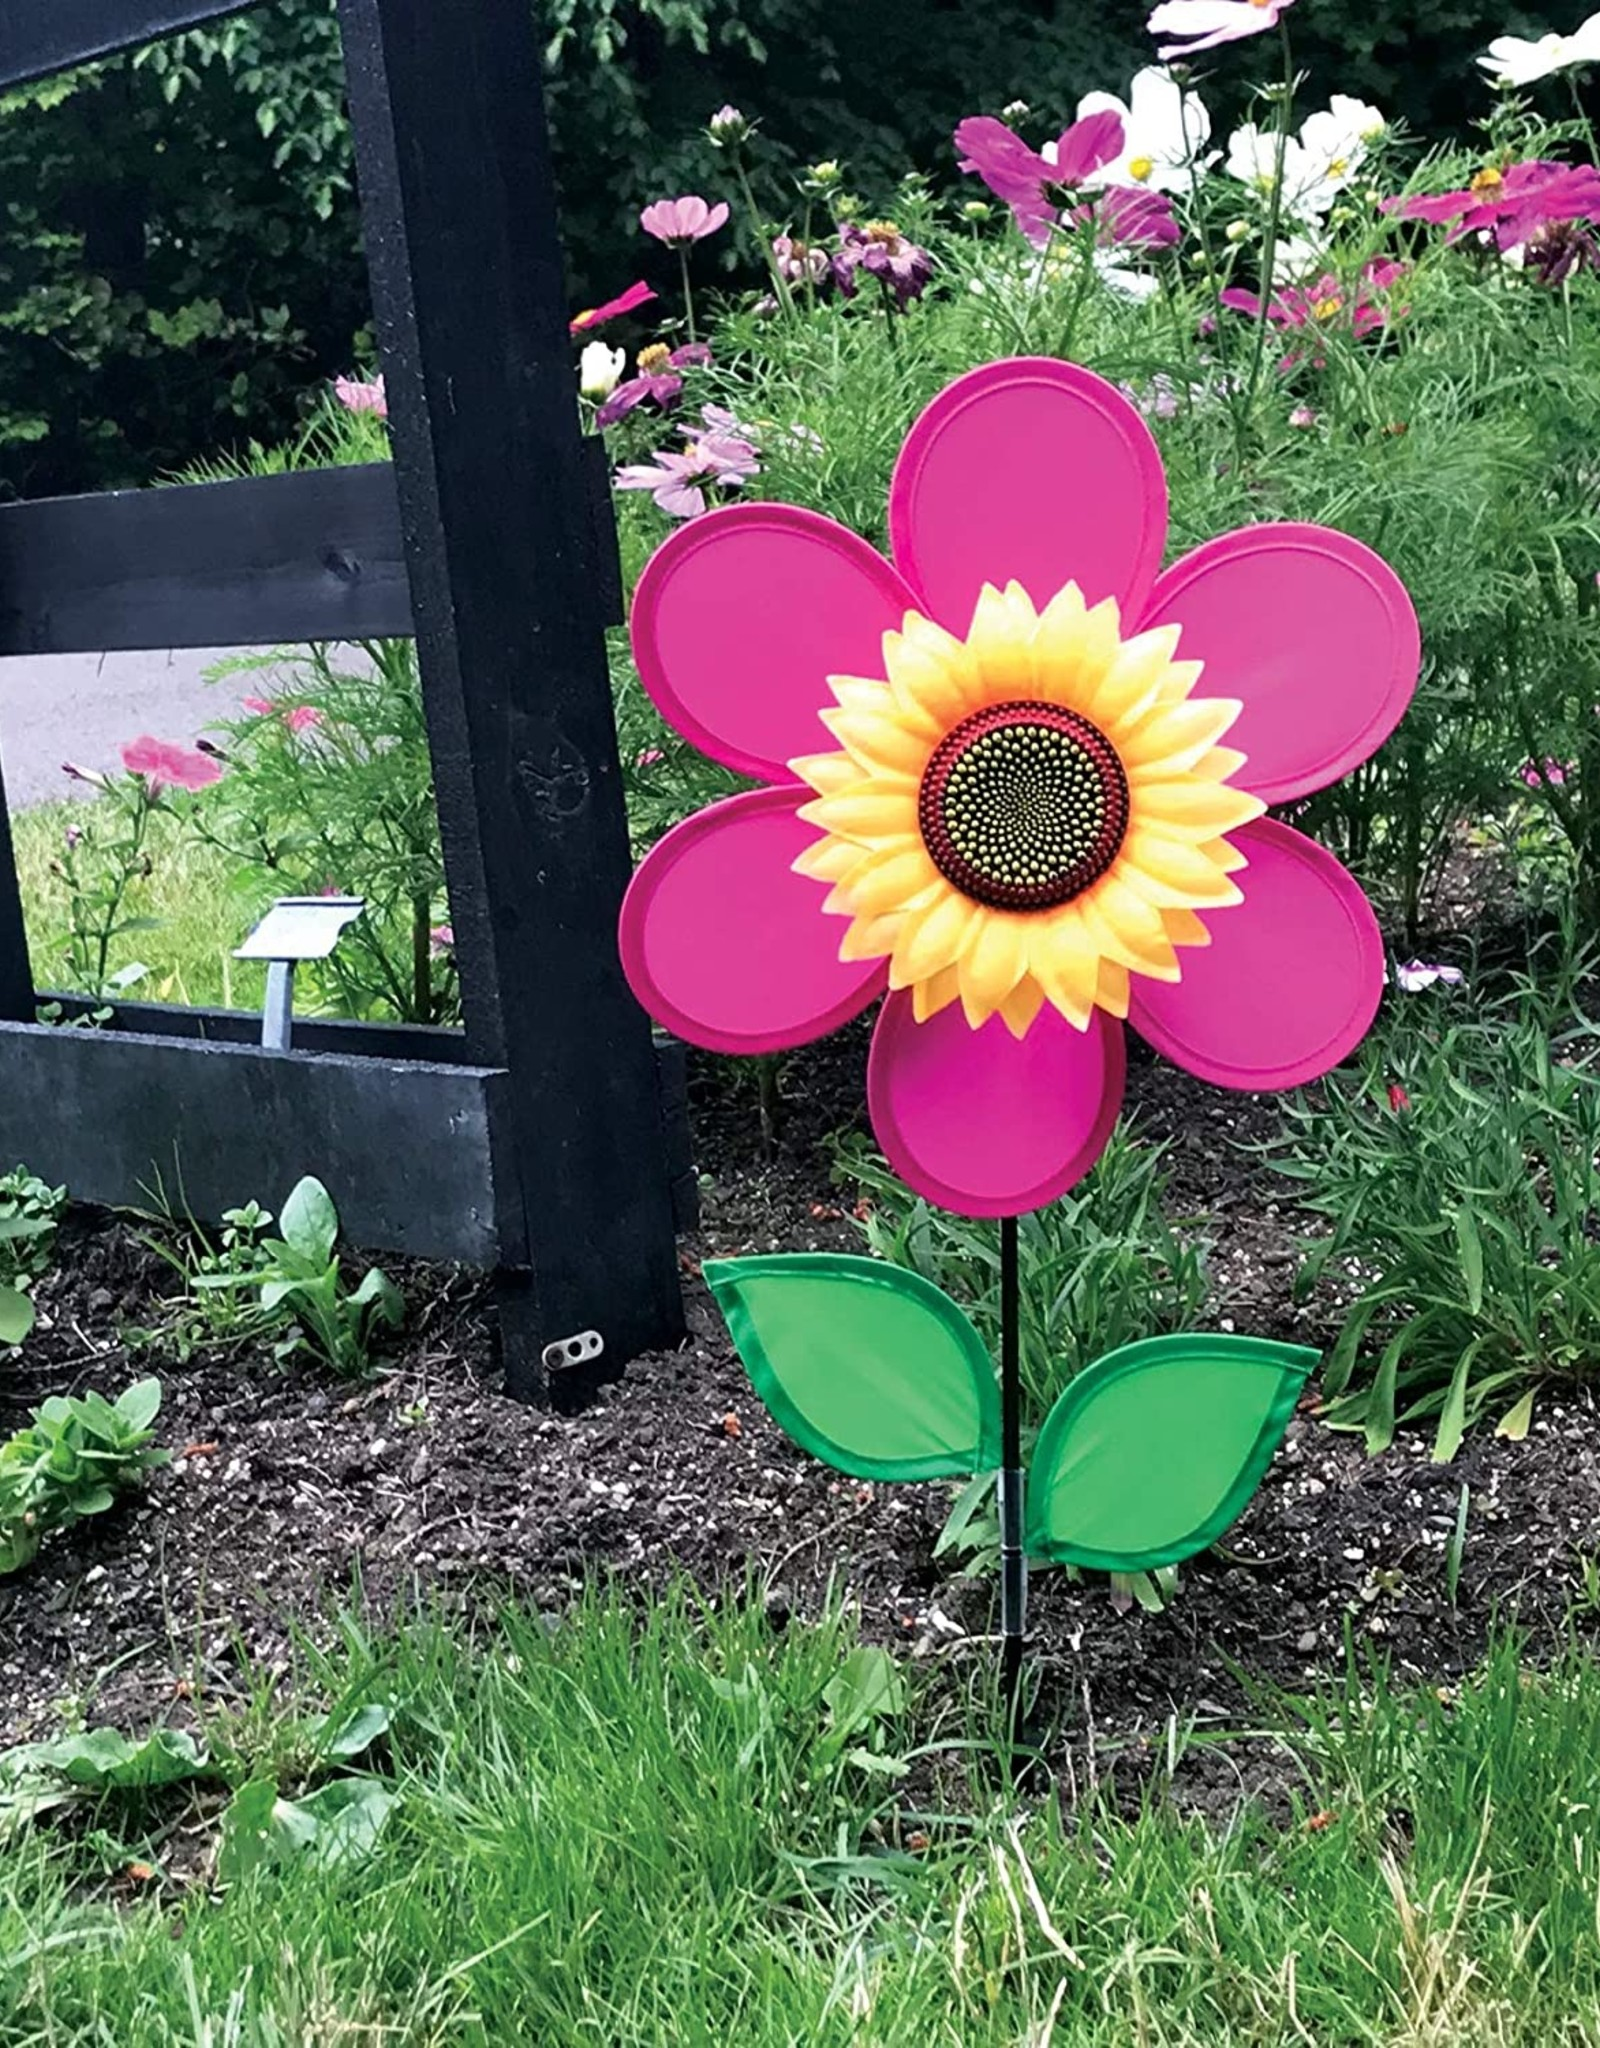 In The Breeze Ground Spinner Sunflower Pink w Leaves